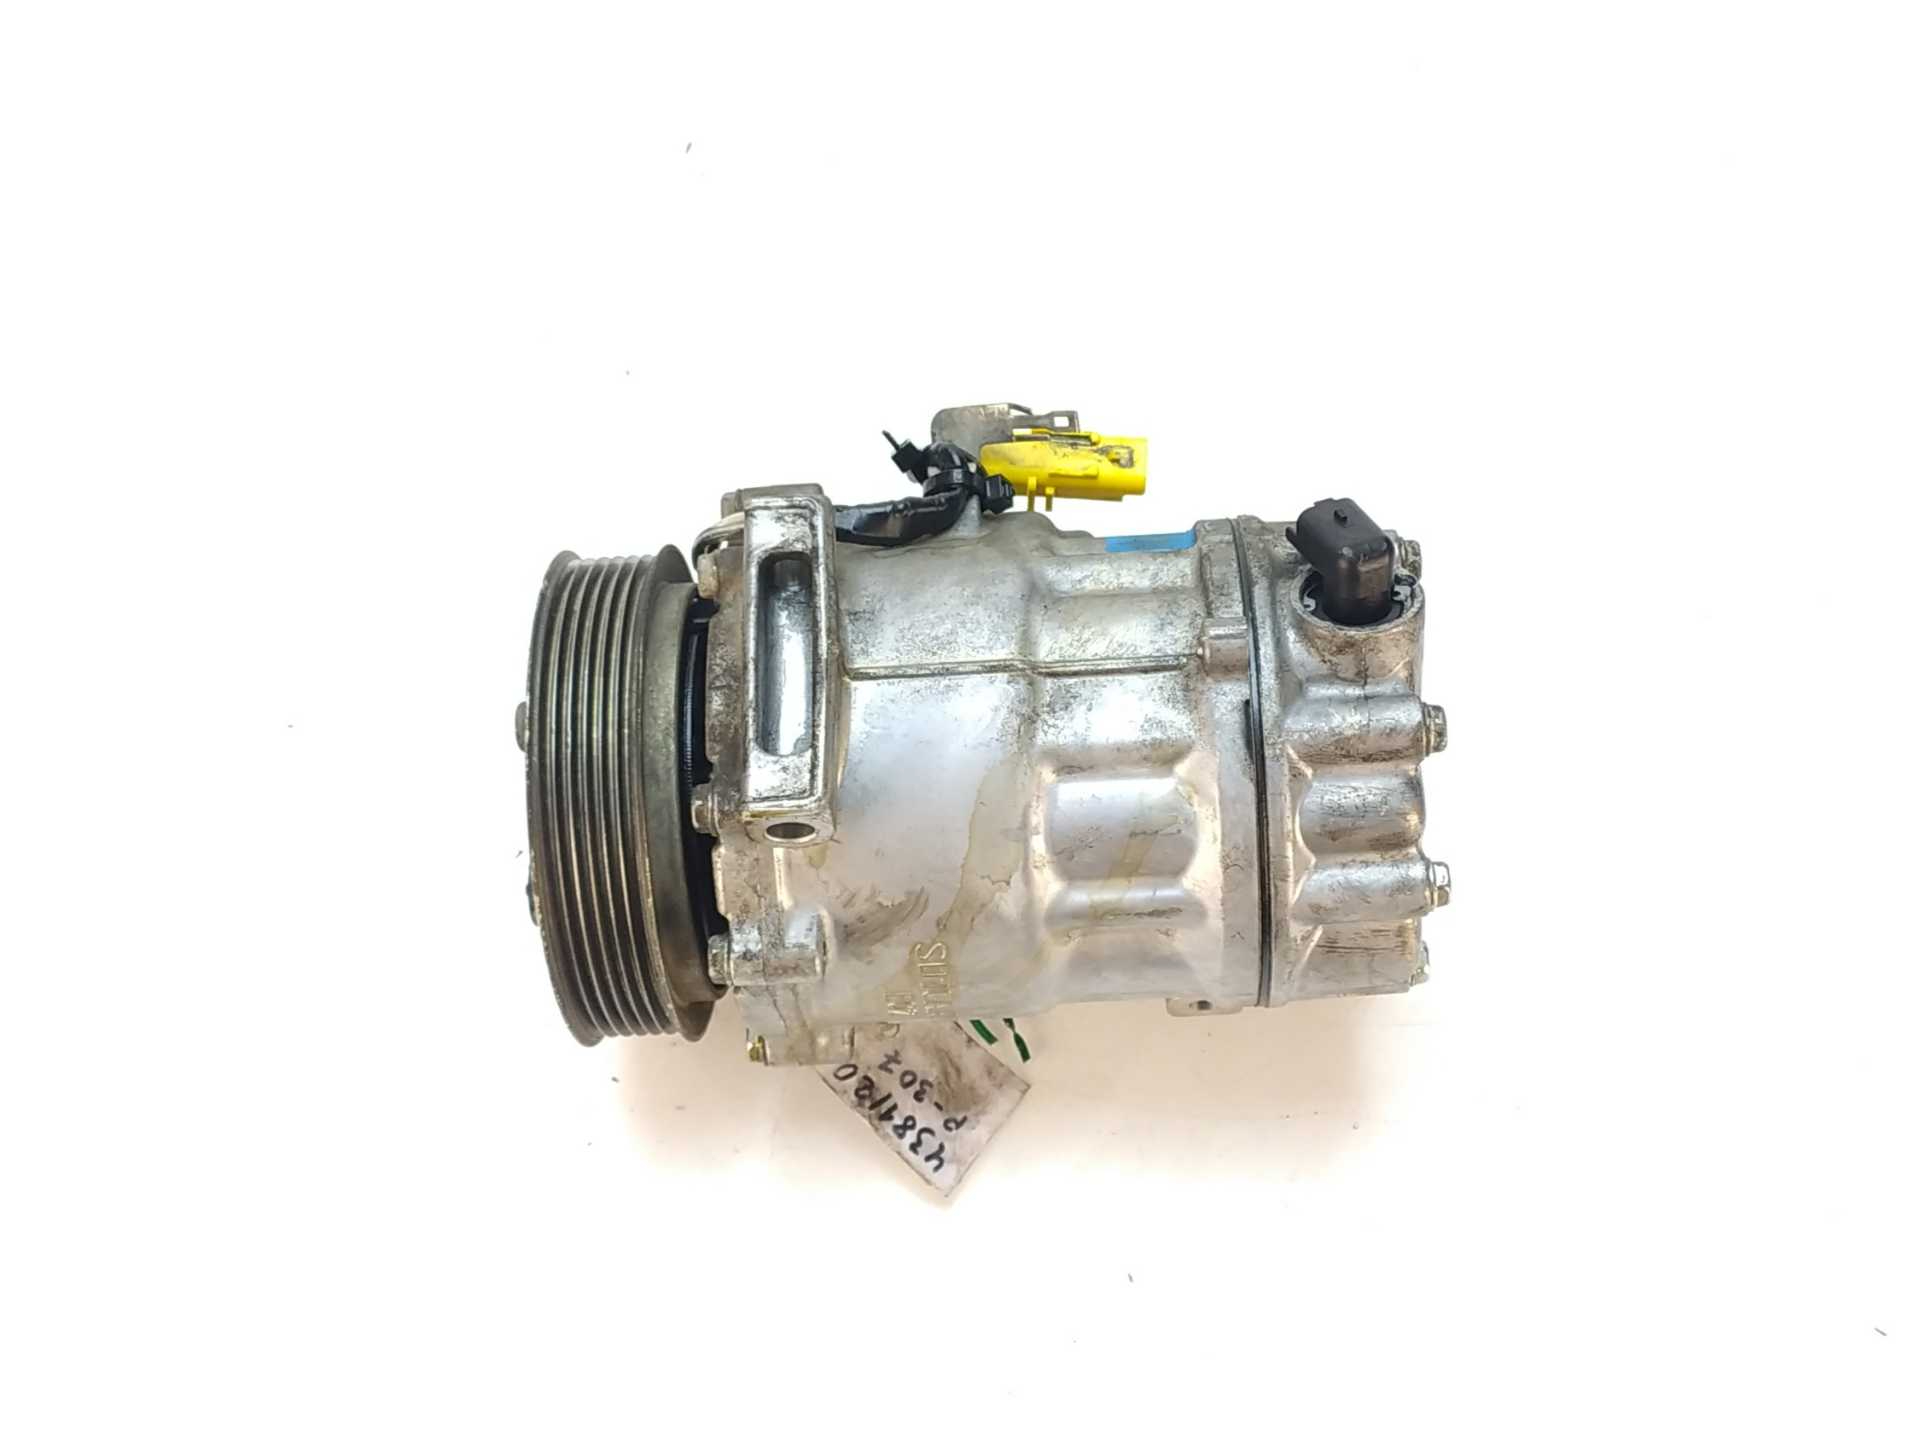 COMPRESOR AIRE ACOND. PEUGEOT 307 SW 1.6 HDI 110 (80 KW / 109 CV) (11.2003 - 12.2007)